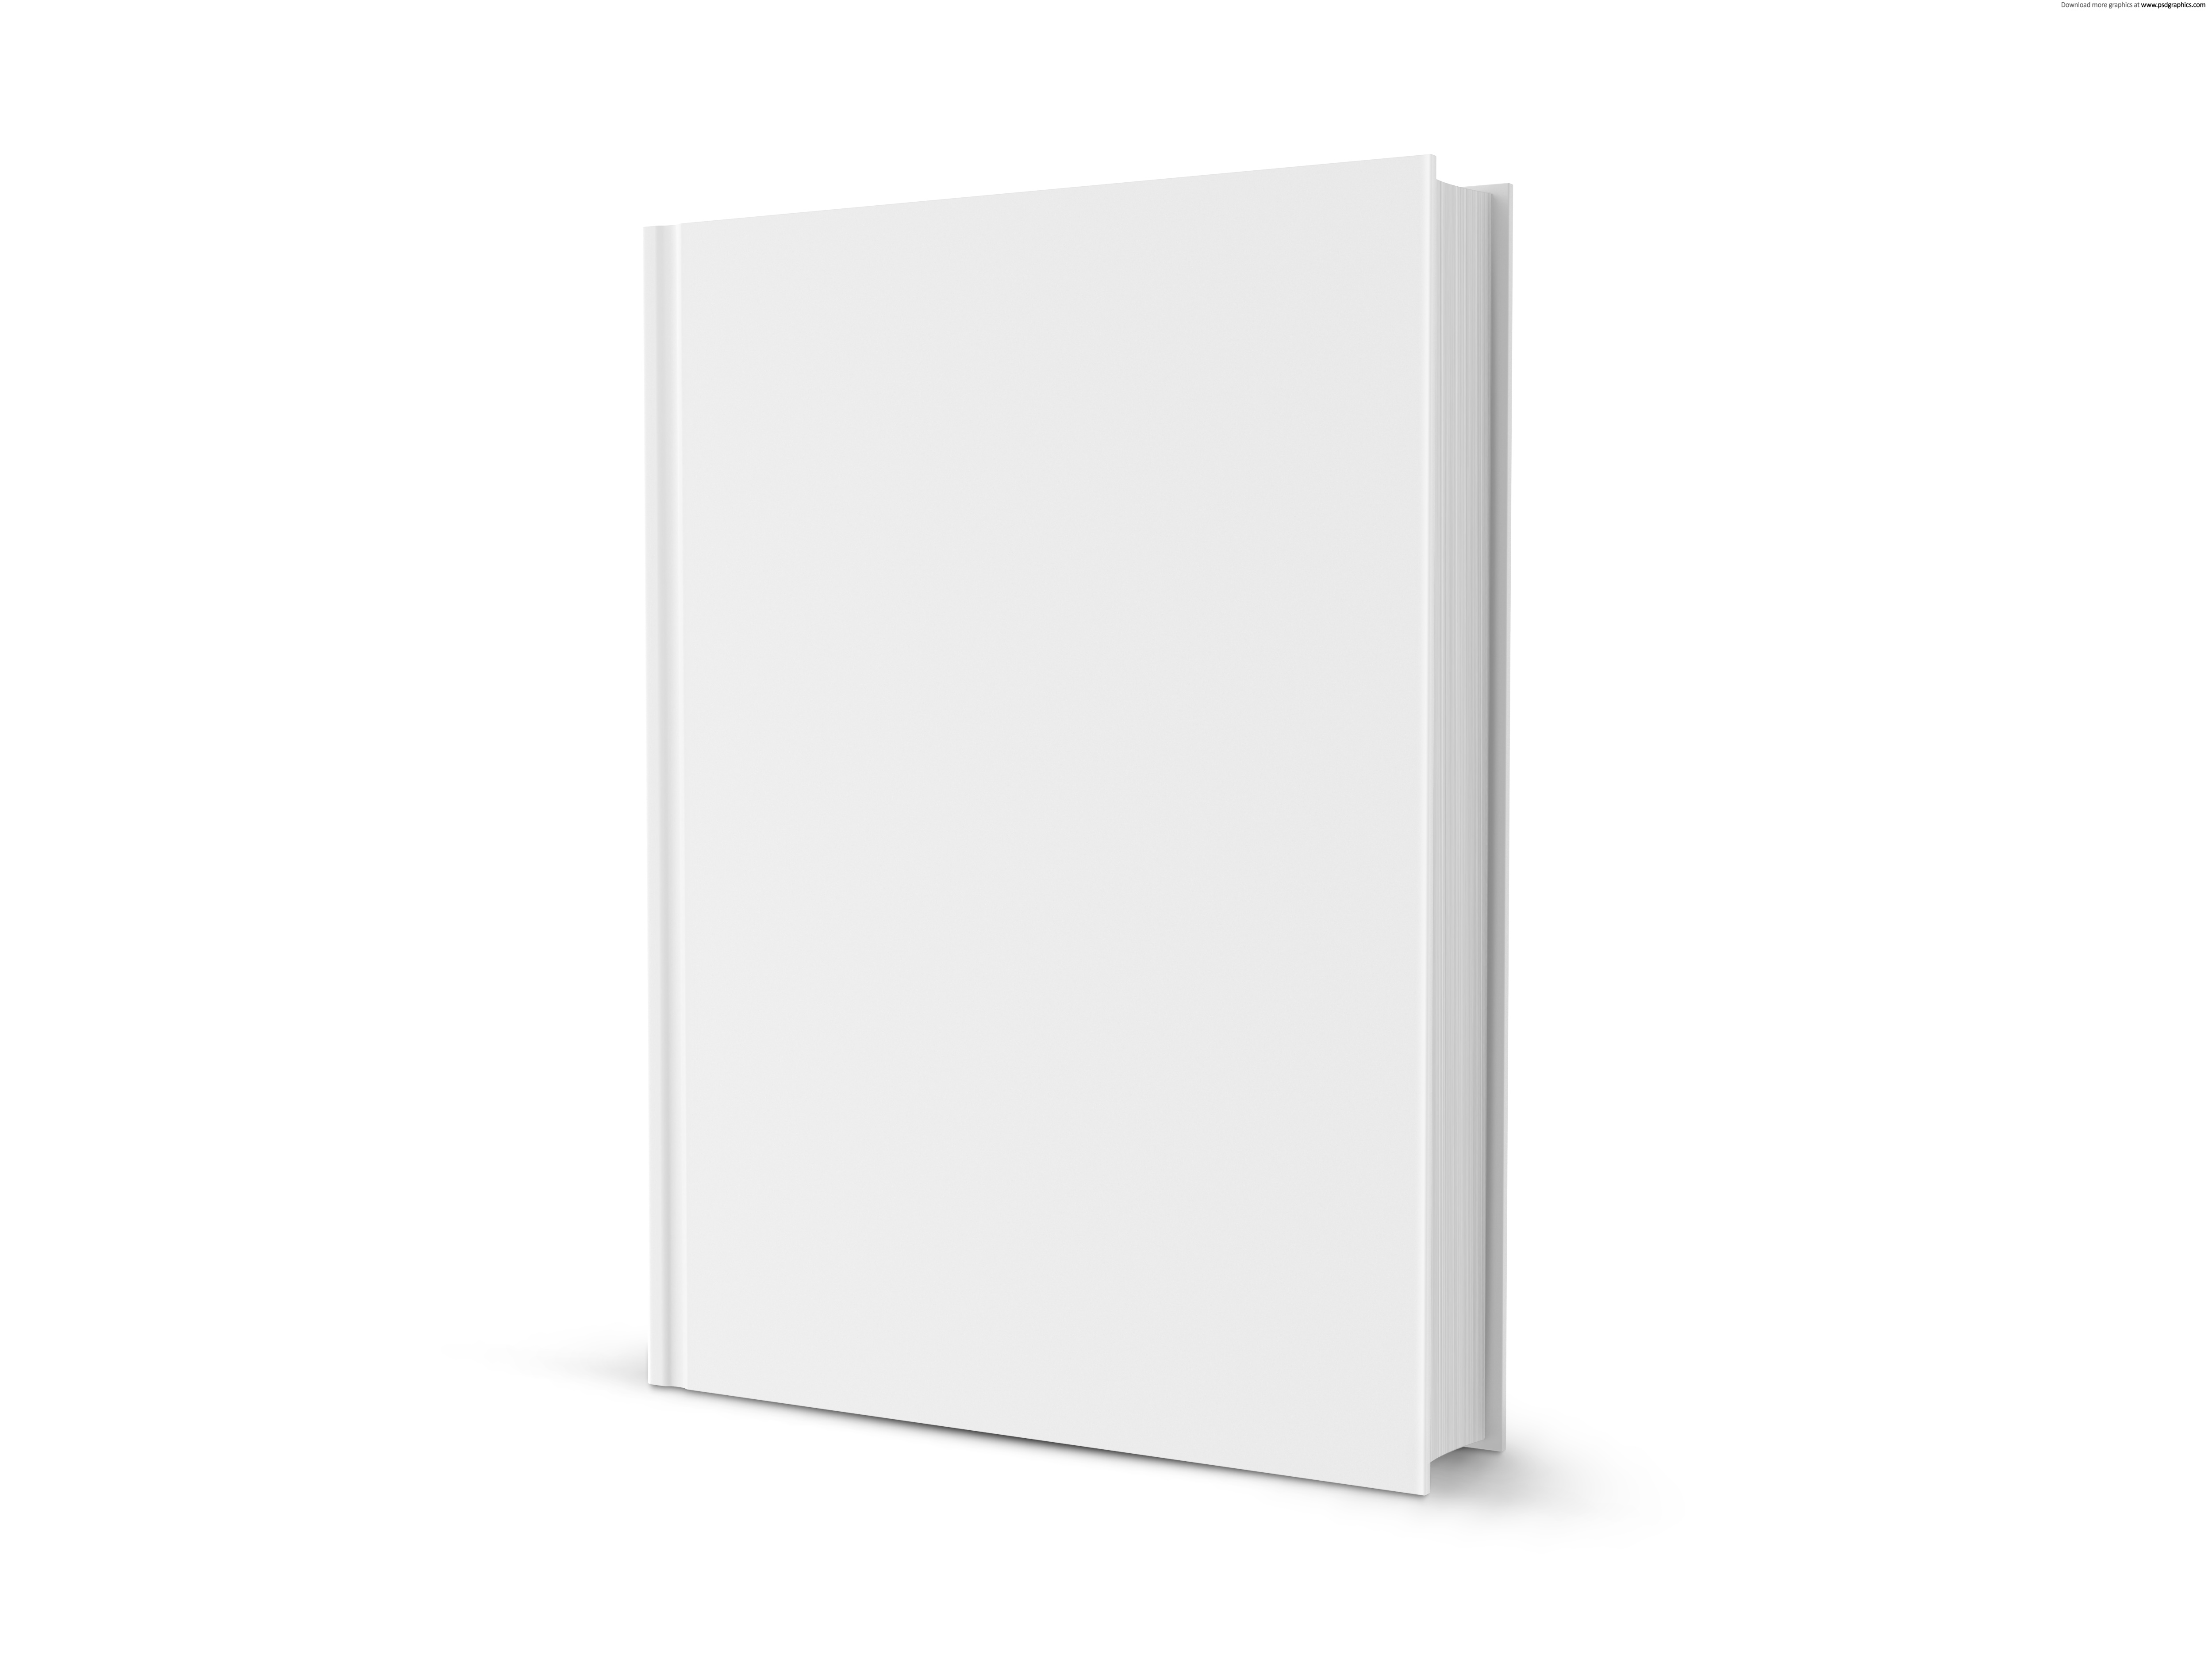 Book cover blank template